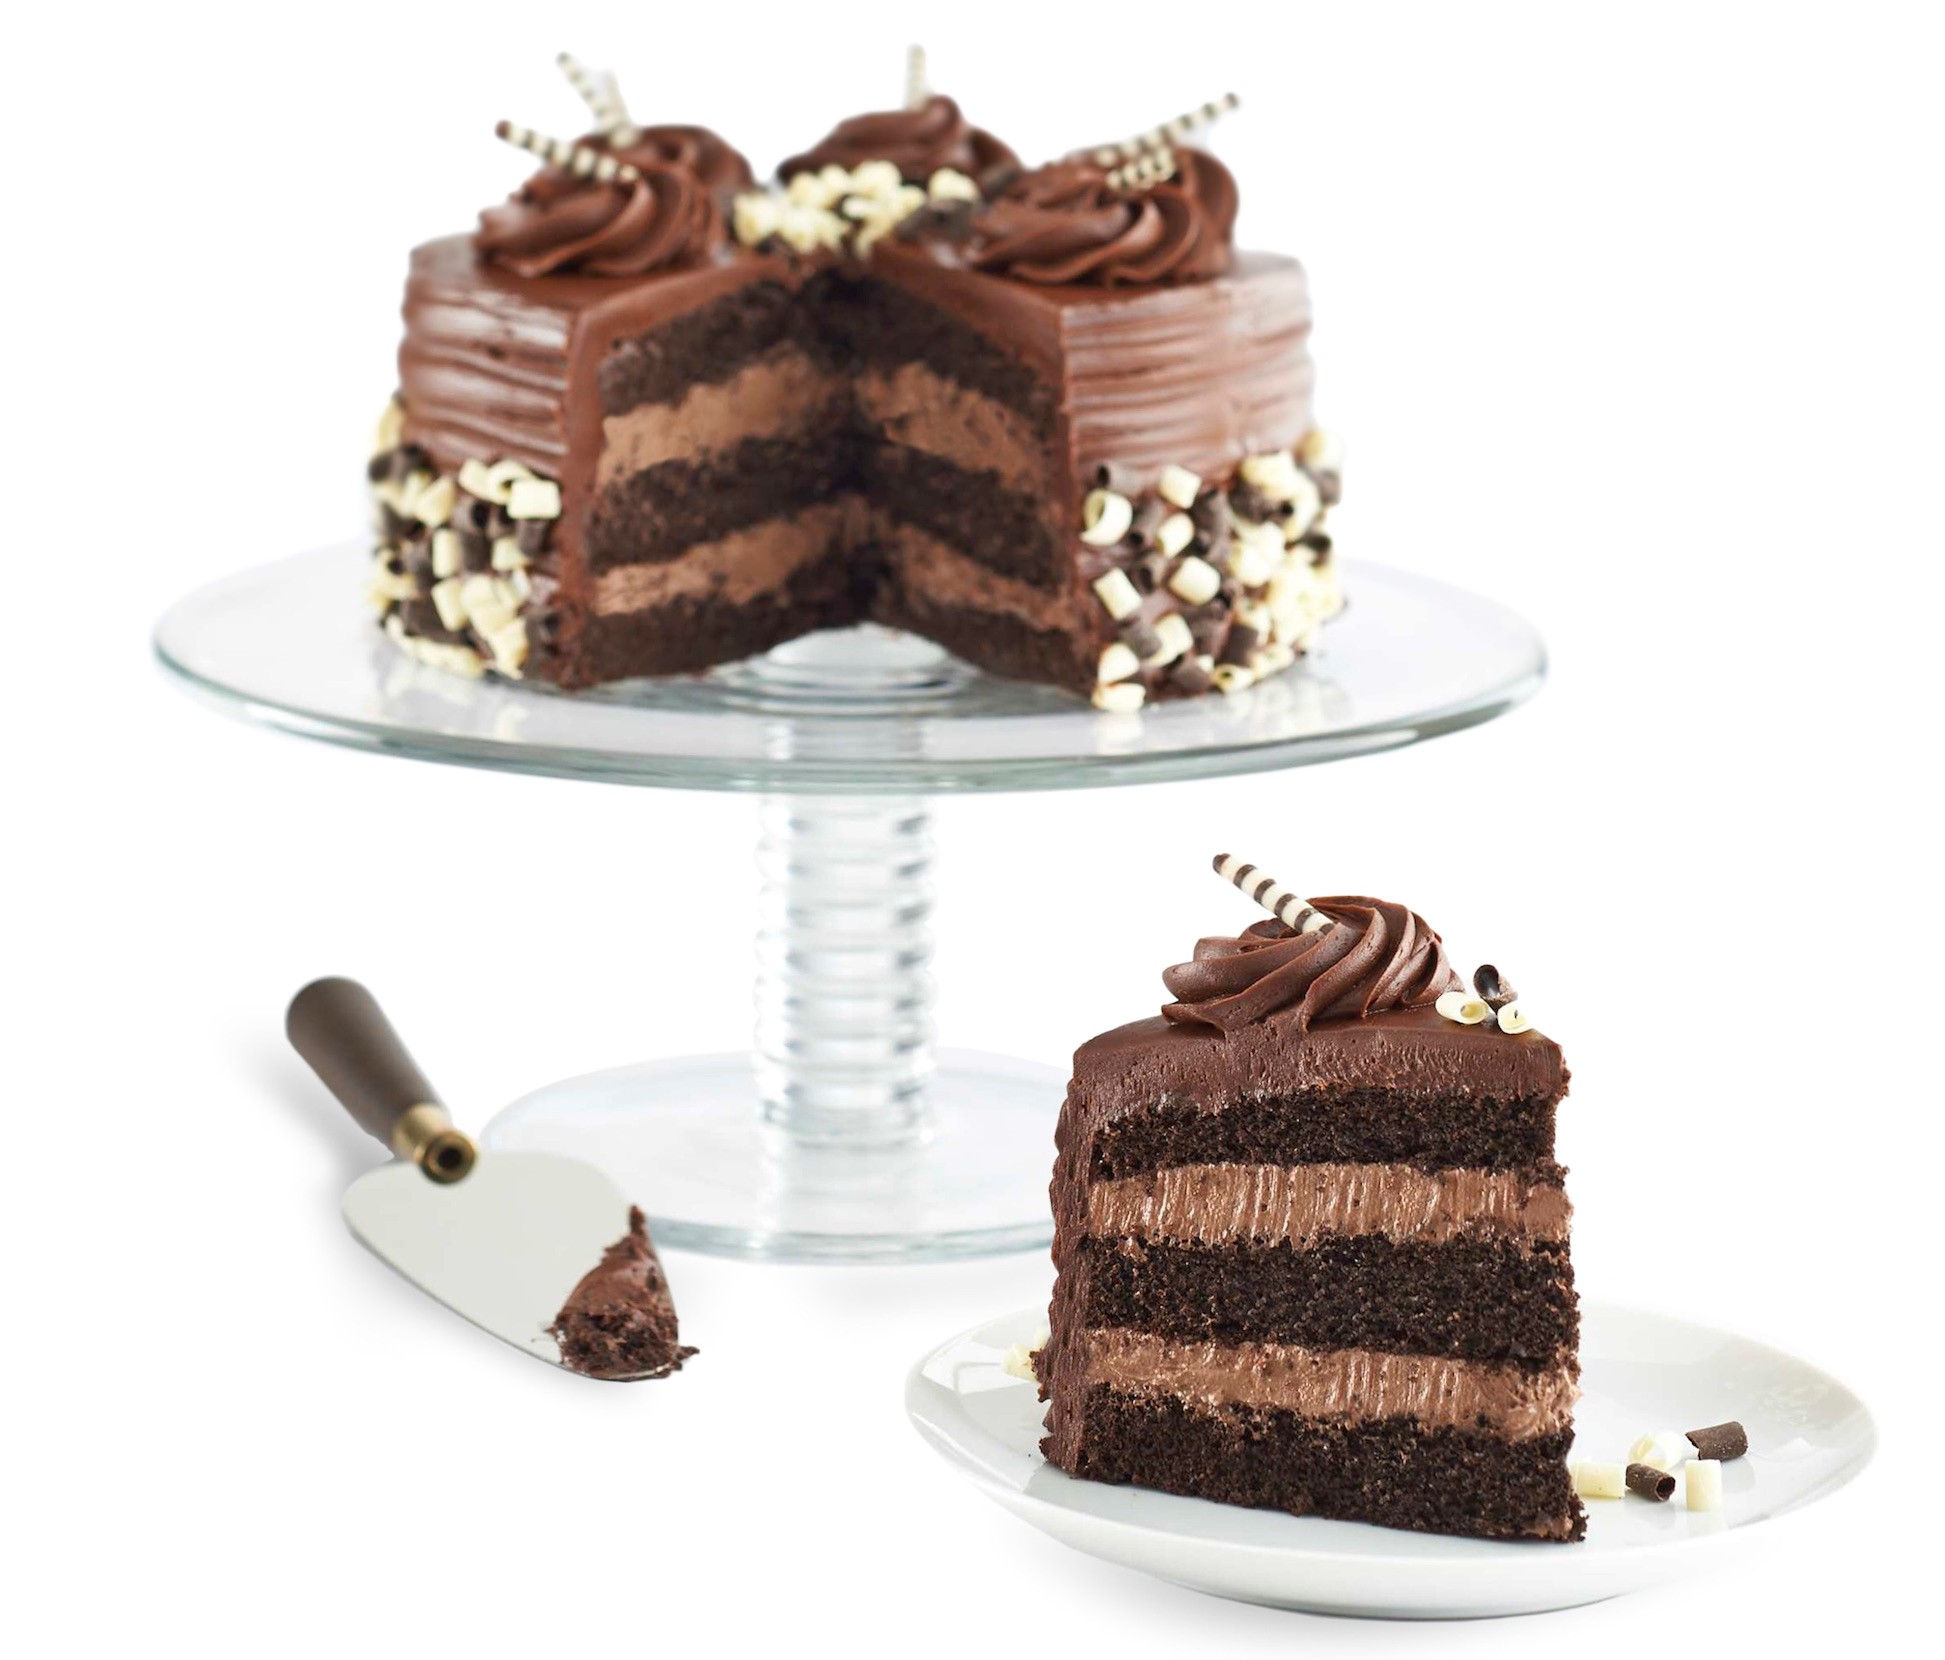 Hy-Vee 3-layer Cake with Piece on Plate